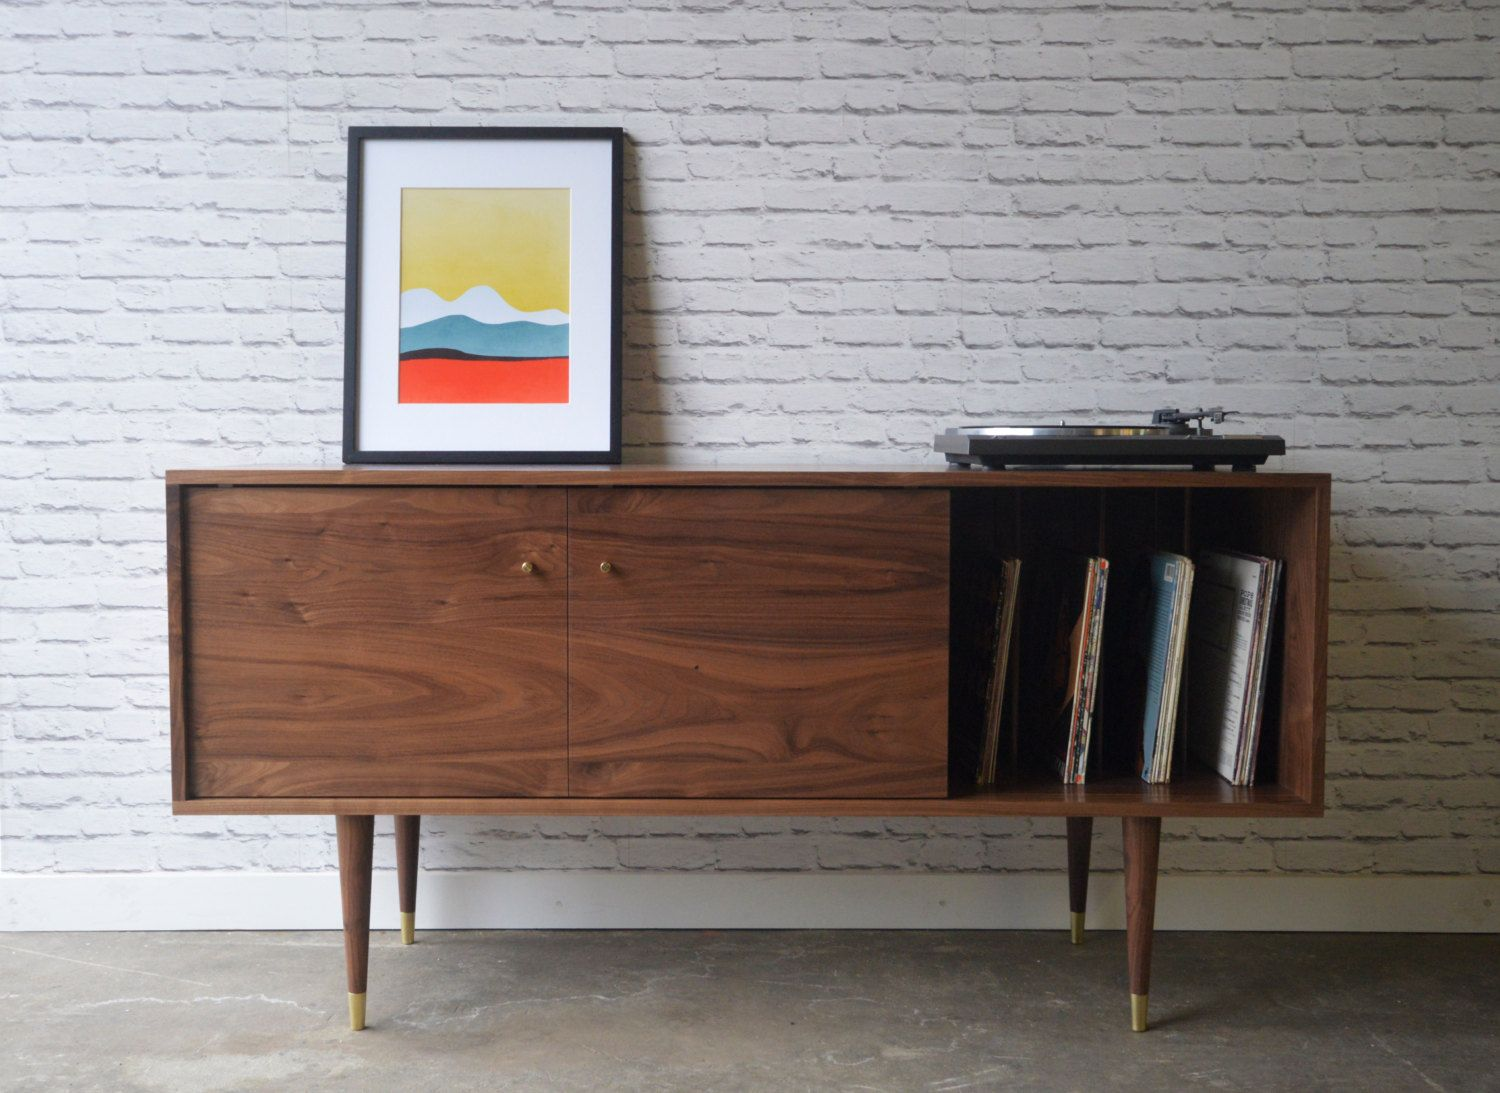 Solid Walnut Media Credenza With Record Storage Kasse Etsy Record Storage Cabinet Turntable Furniture Mid Century Sideboard